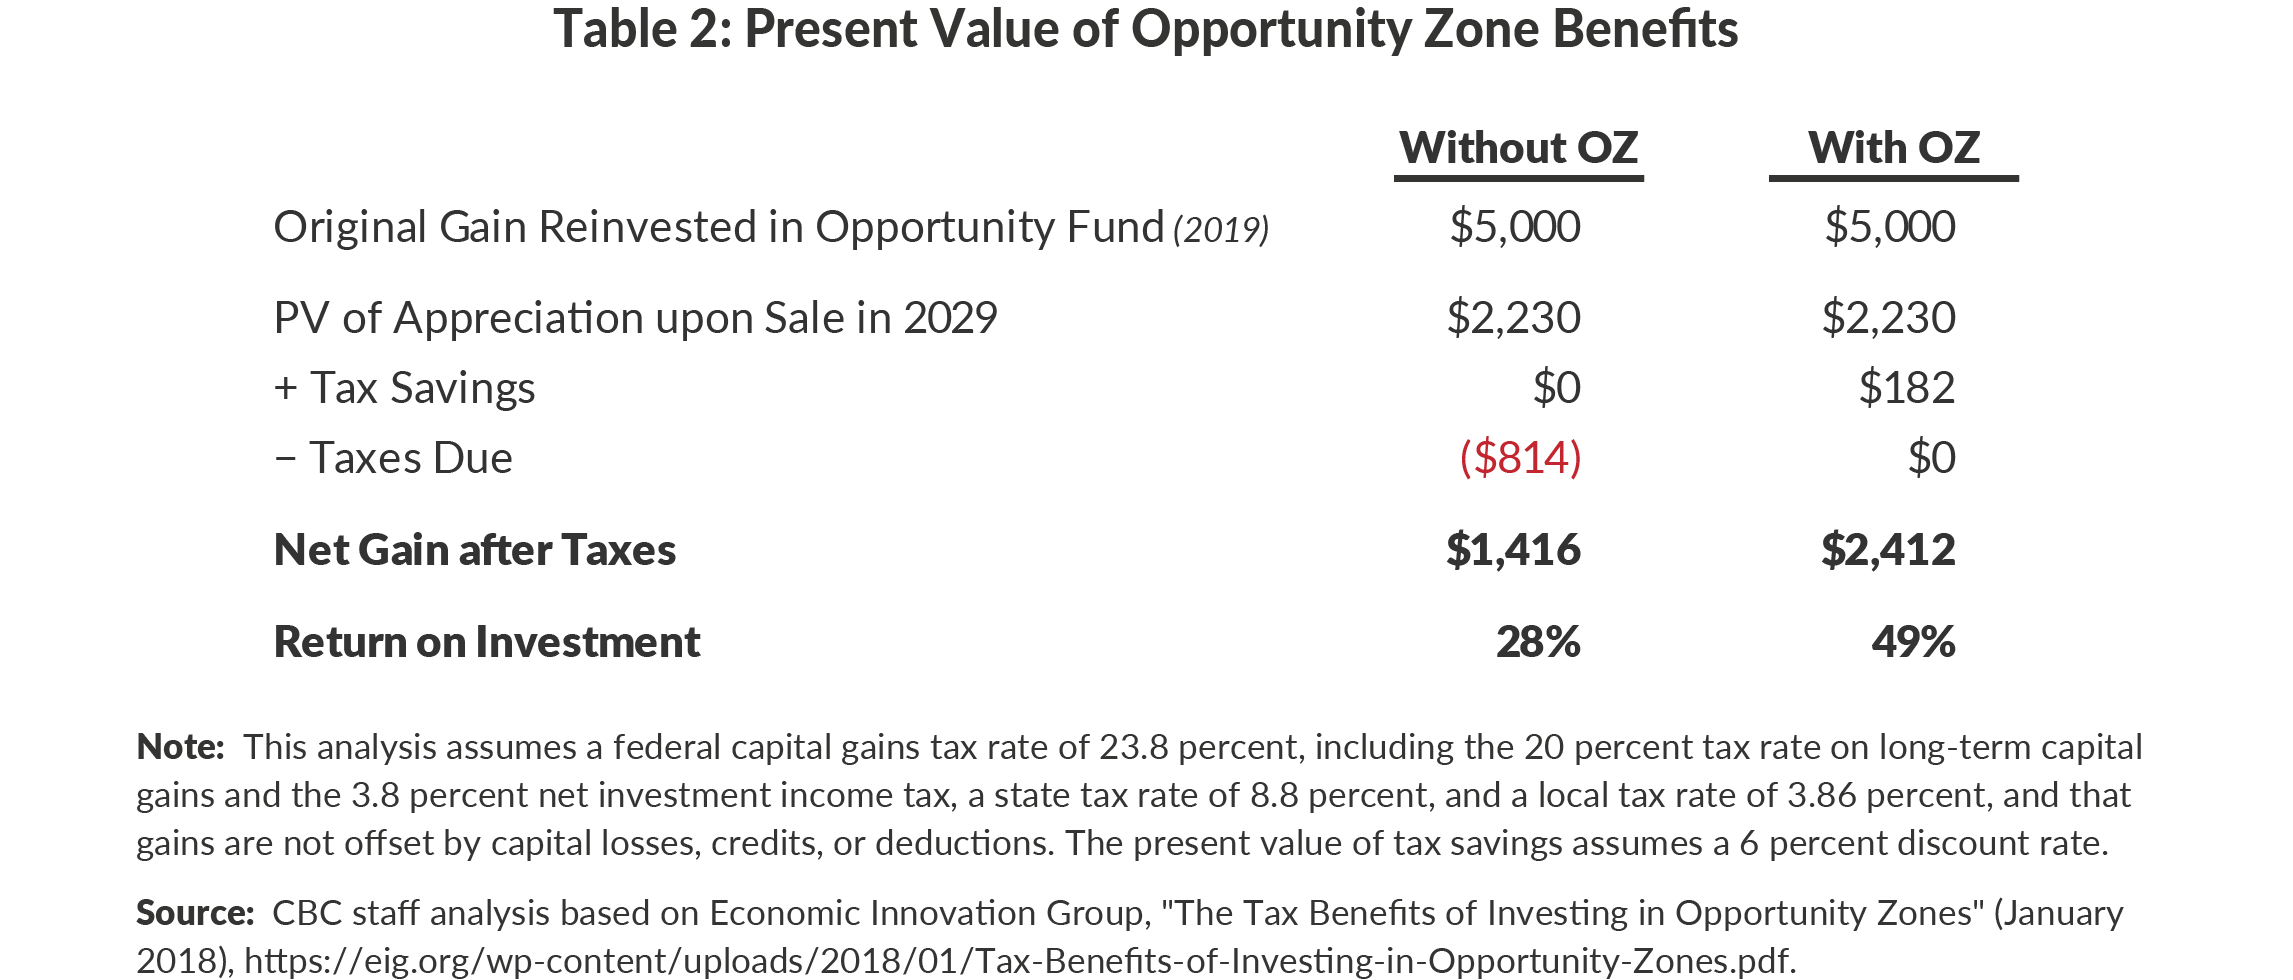 Table 2: Present Value of Opportunity Zone Benefits